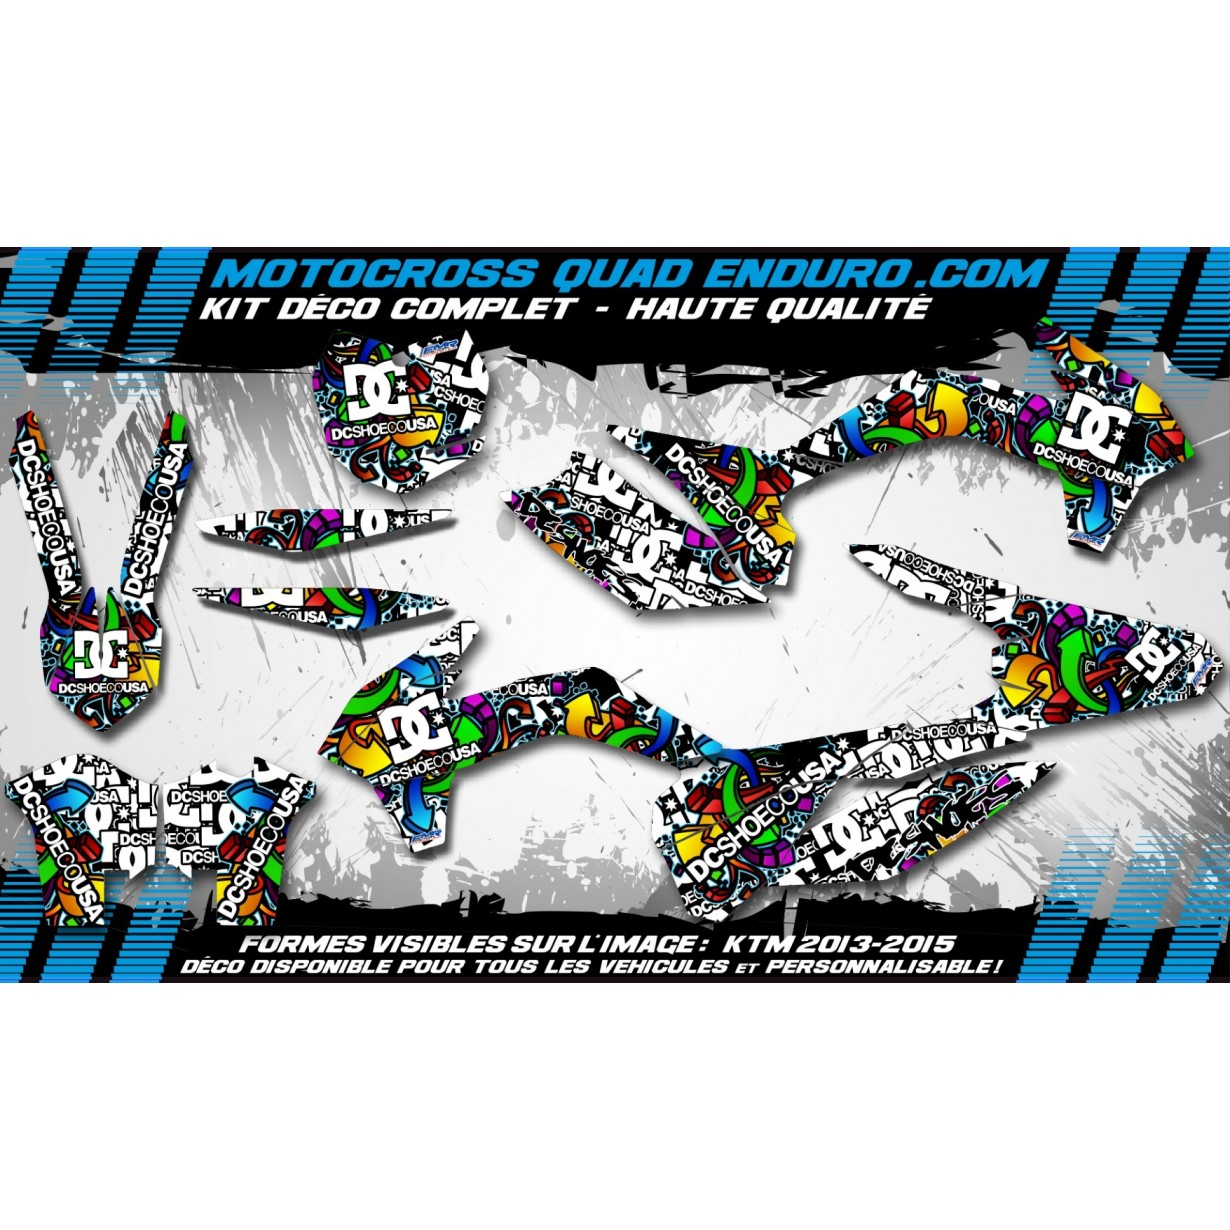 KIT DÉCO Perso 50 RR enduro 2007 DC Shoes MA14A